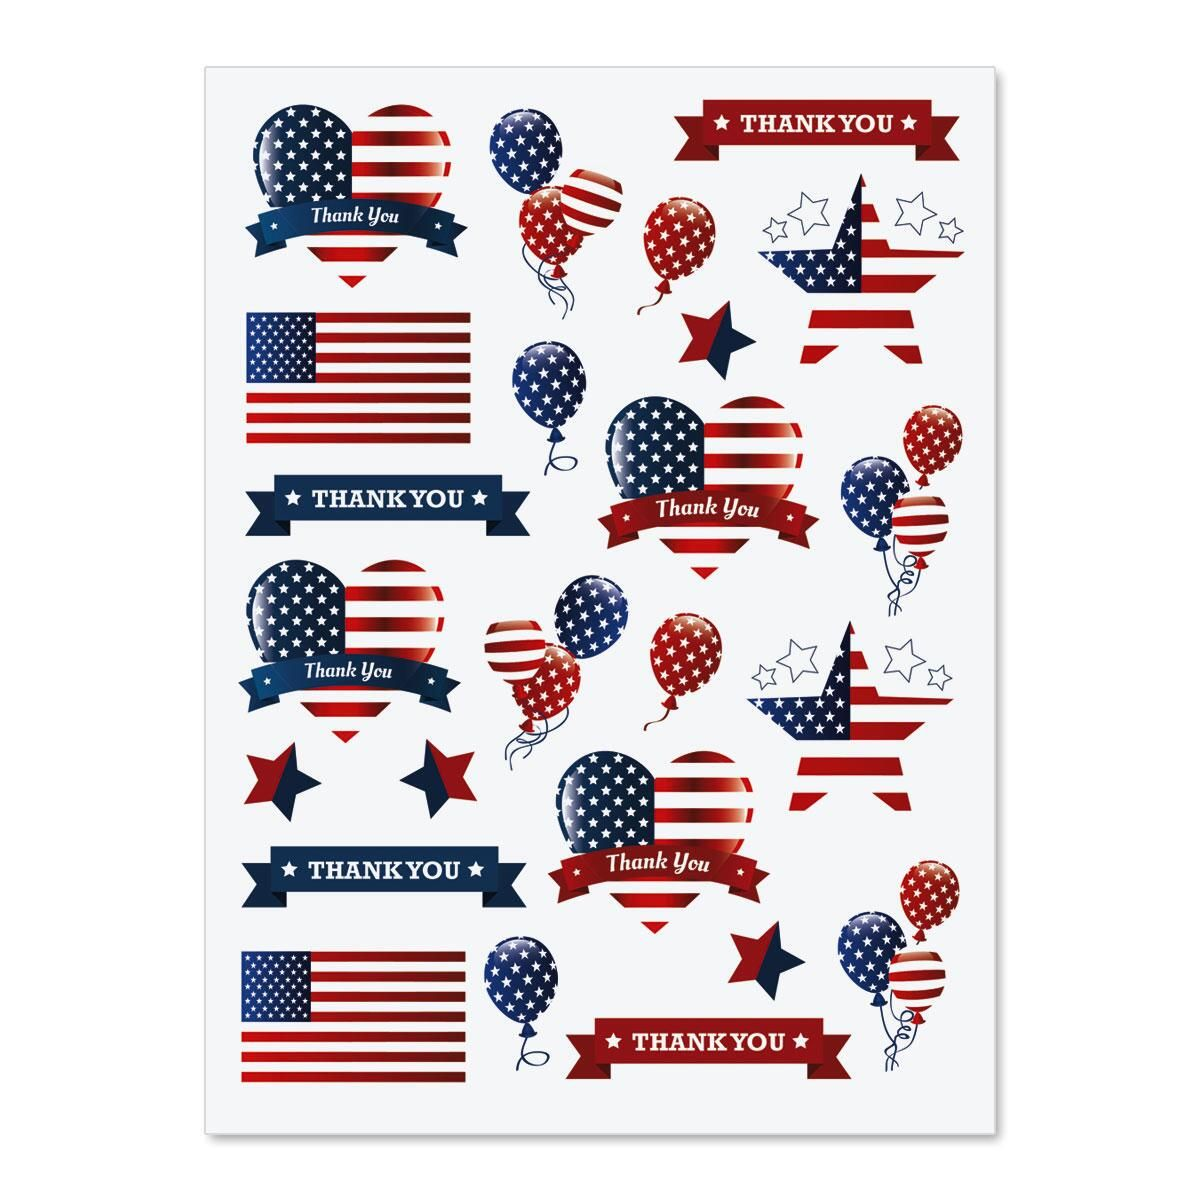 Patriotic Hearts & Stars Stickers